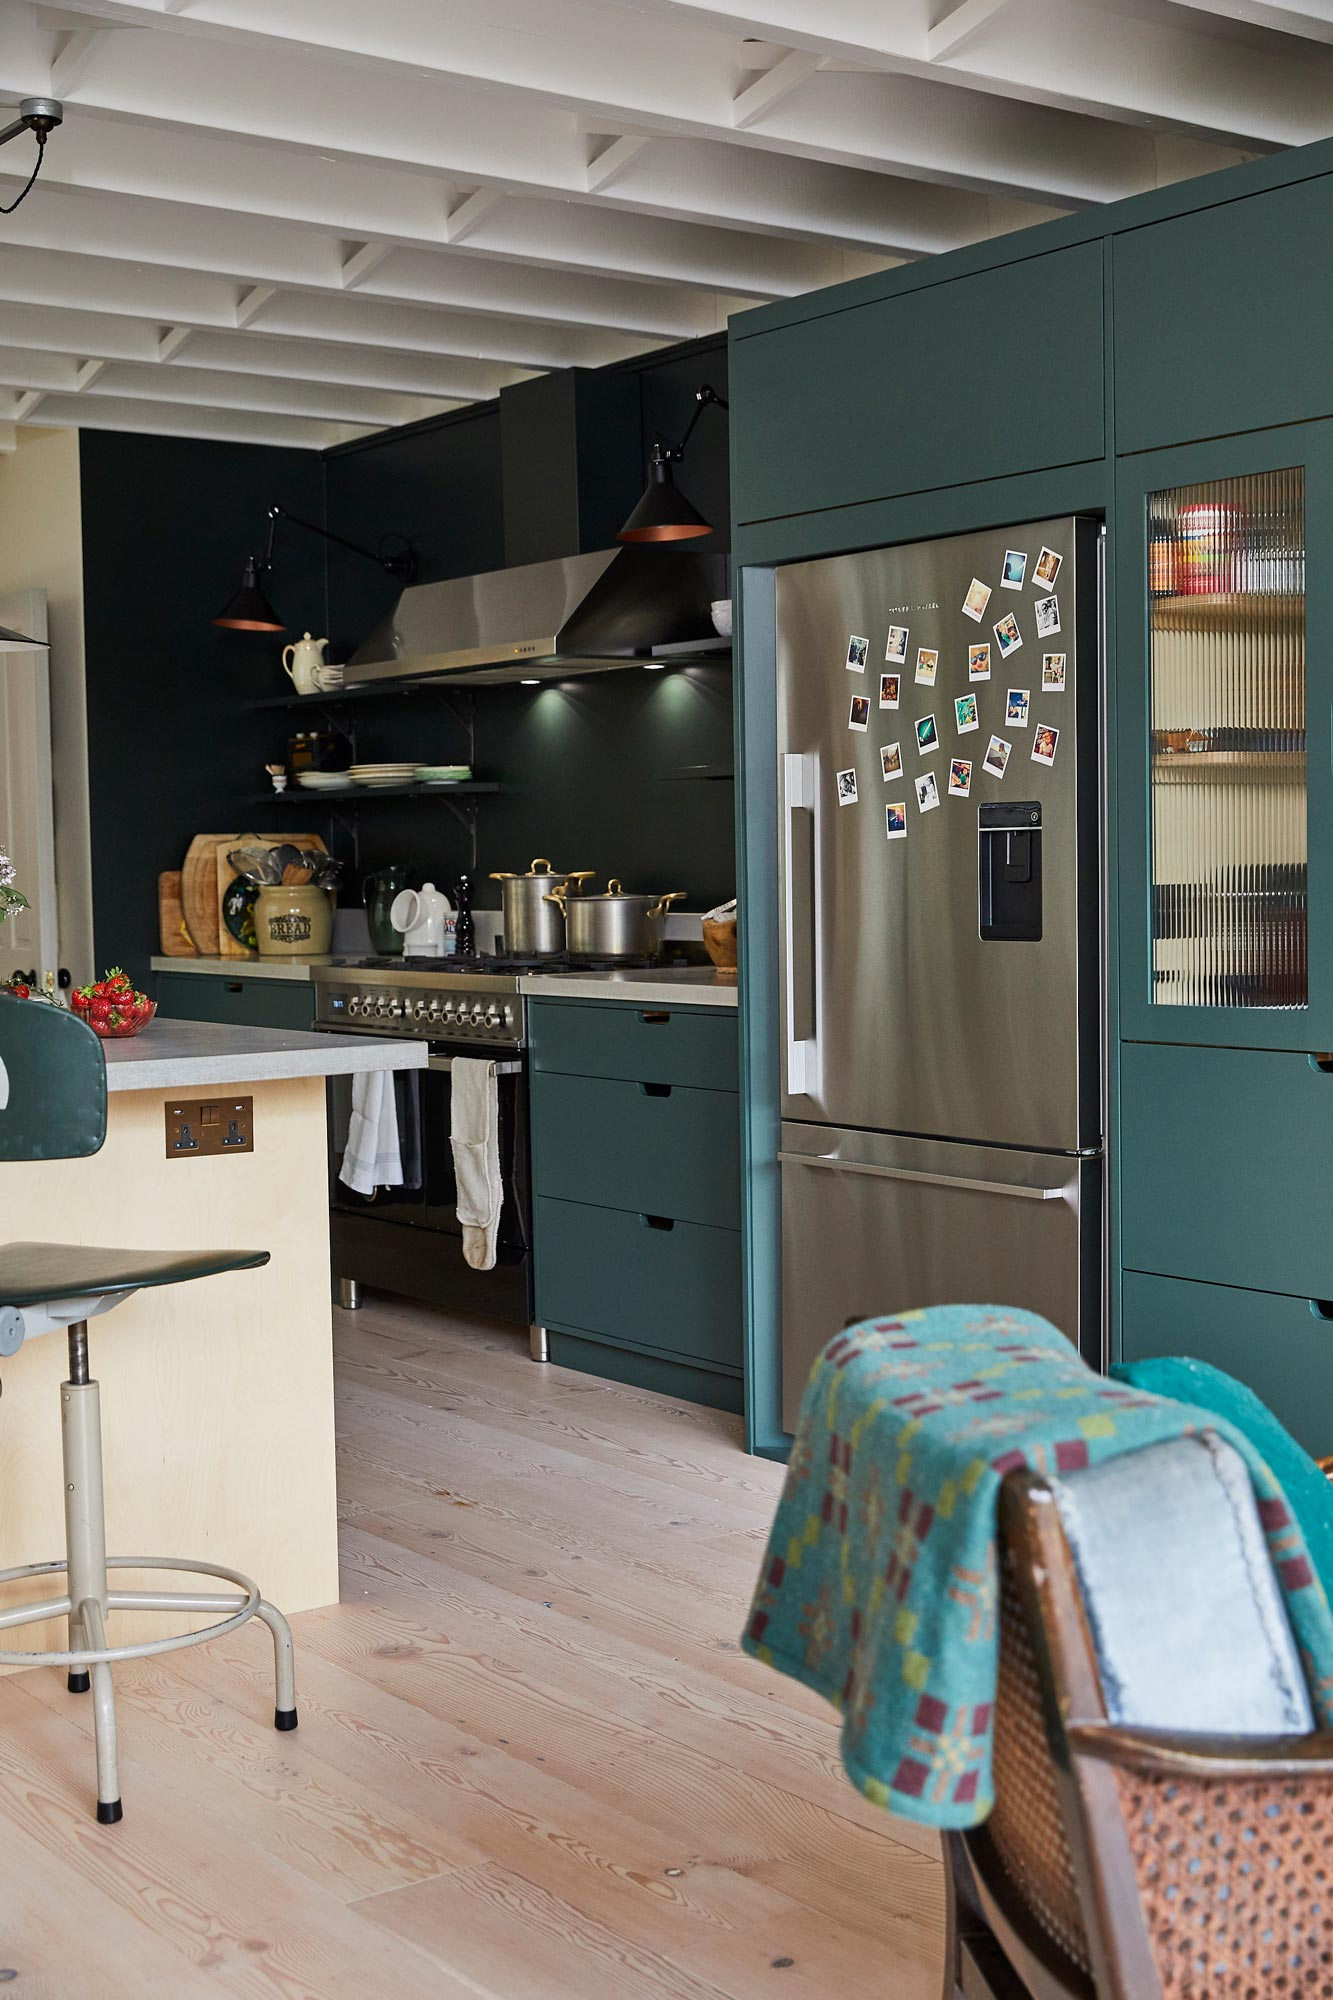 Freestanding stainless steel Fisher & Paykel fridge freezer in bespoke green kitchen